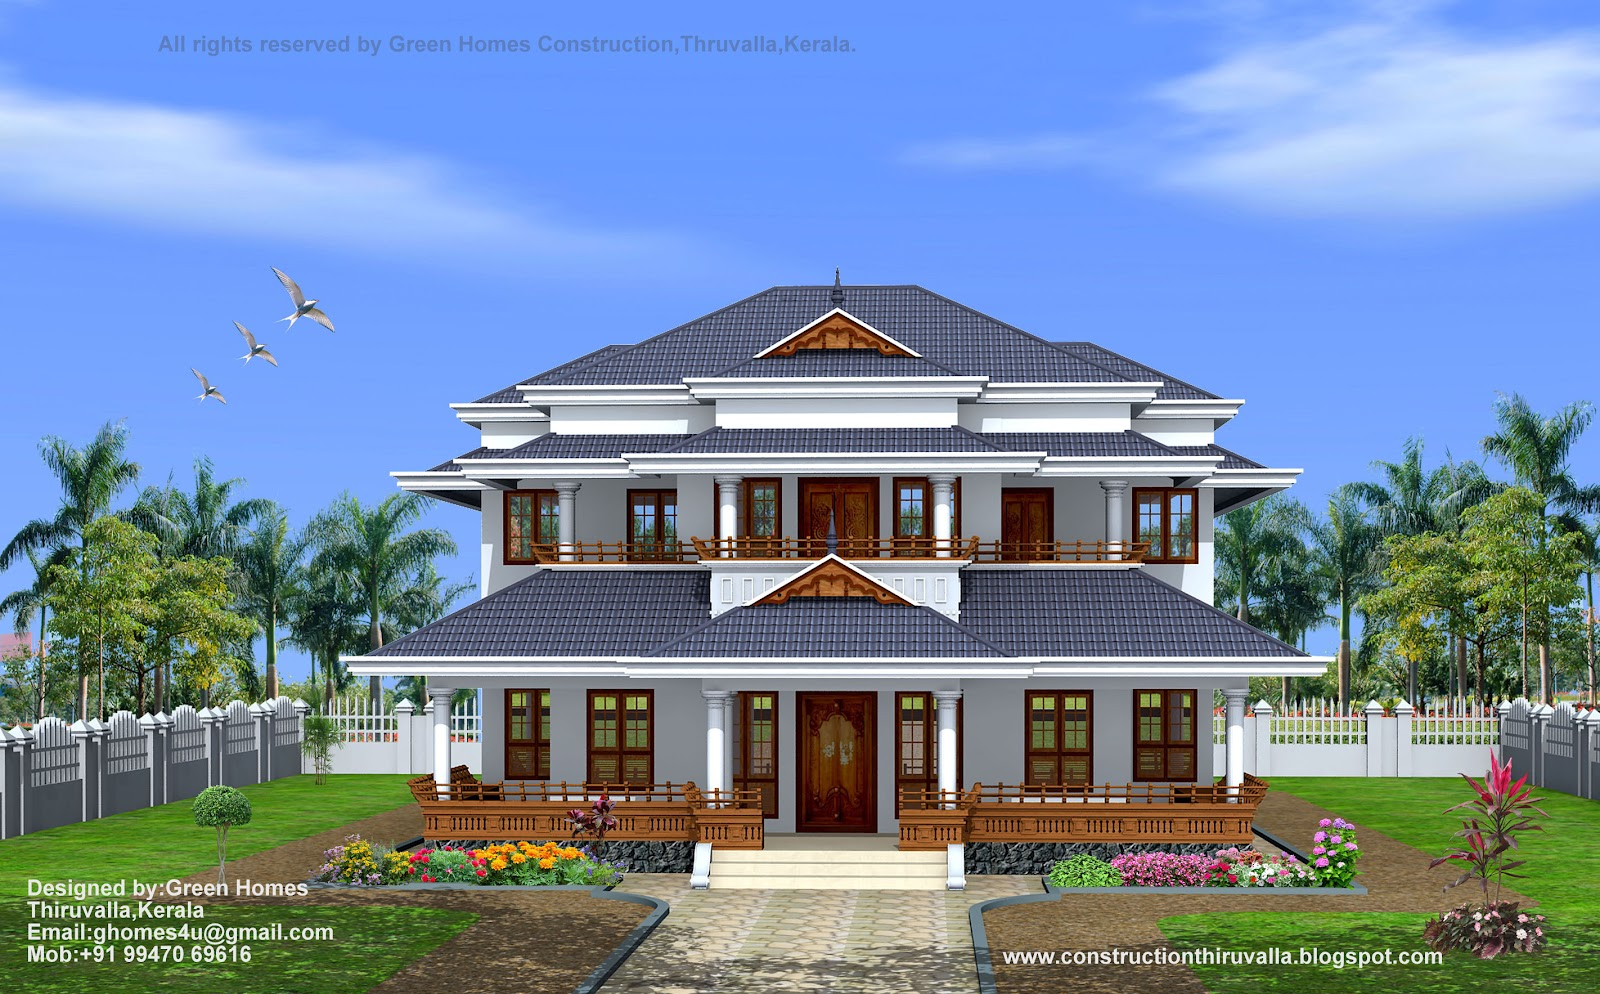 feet traditional style home designed green homes thiruvalla kerala green homes designs epic home designs